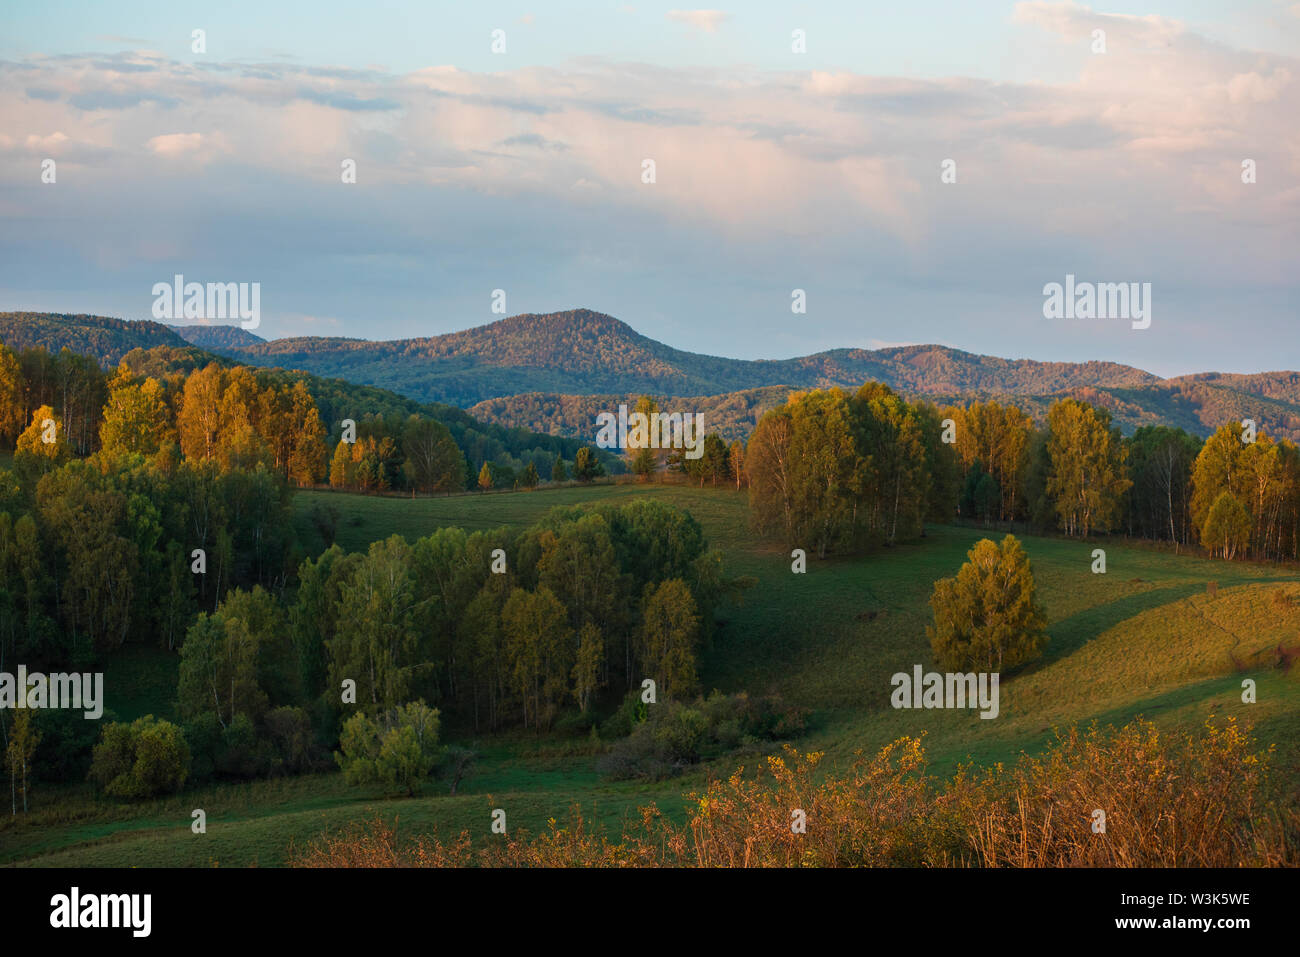 Beauty dawn in the mountains - Stock Image